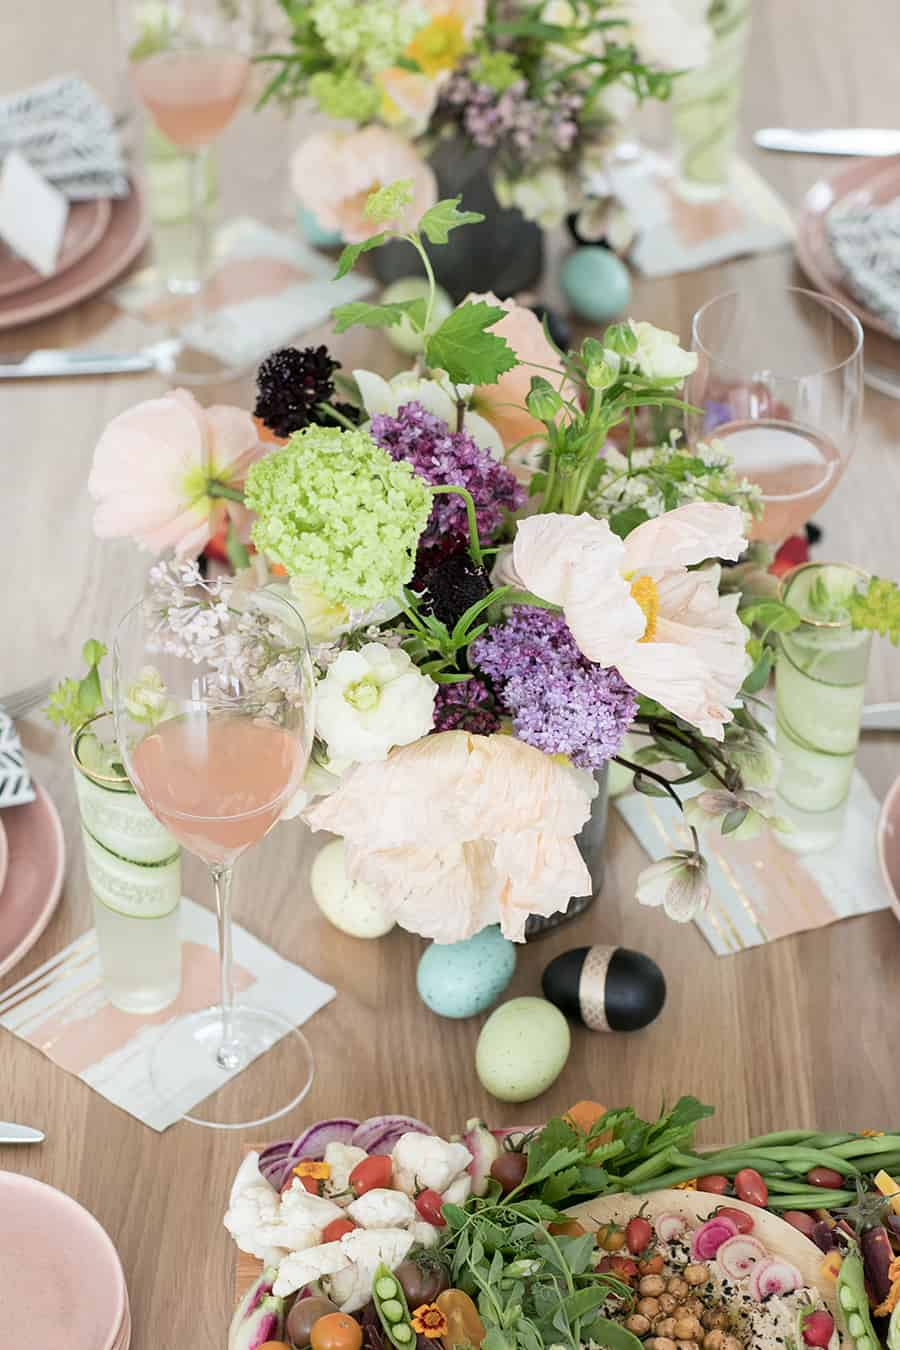 Easter brunch flowers on a table with a glass of rose and Easter eggs.